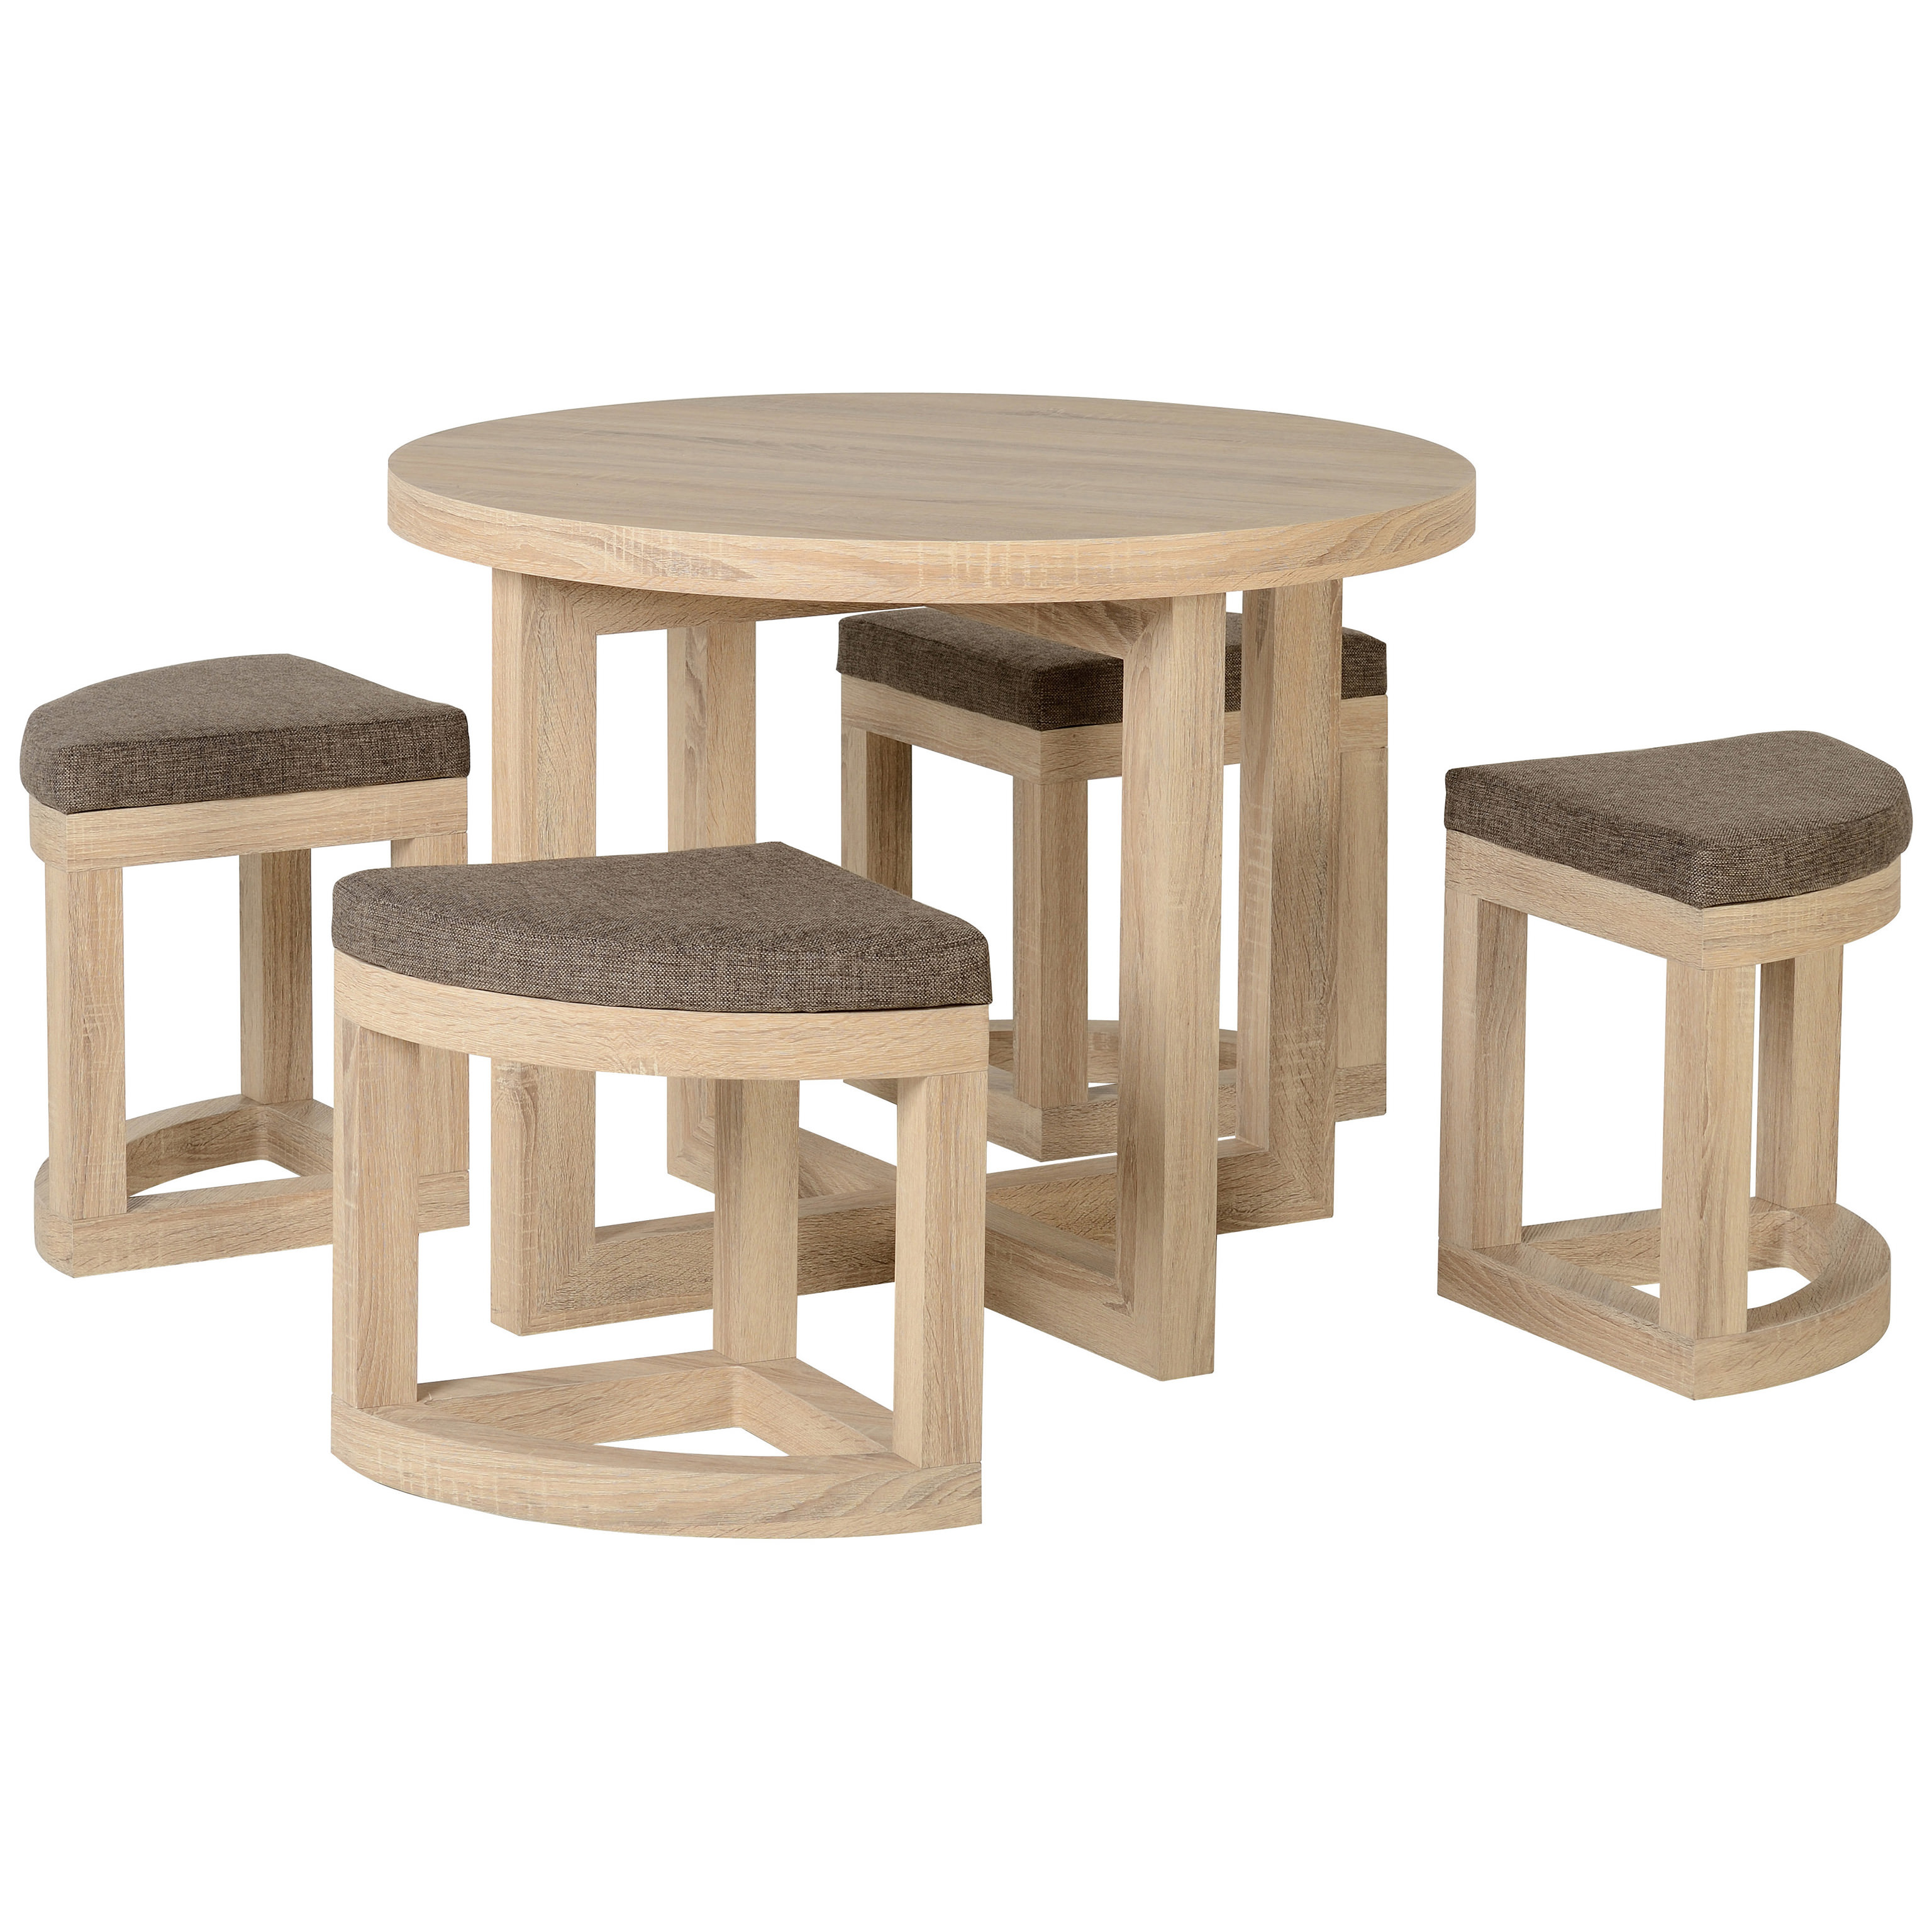 Fine Details About Sonoma Oak Veneer Round Stowaway Dining Table And Chair Set With 4 Brown Seats Bralicious Painted Fabric Chair Ideas Braliciousco